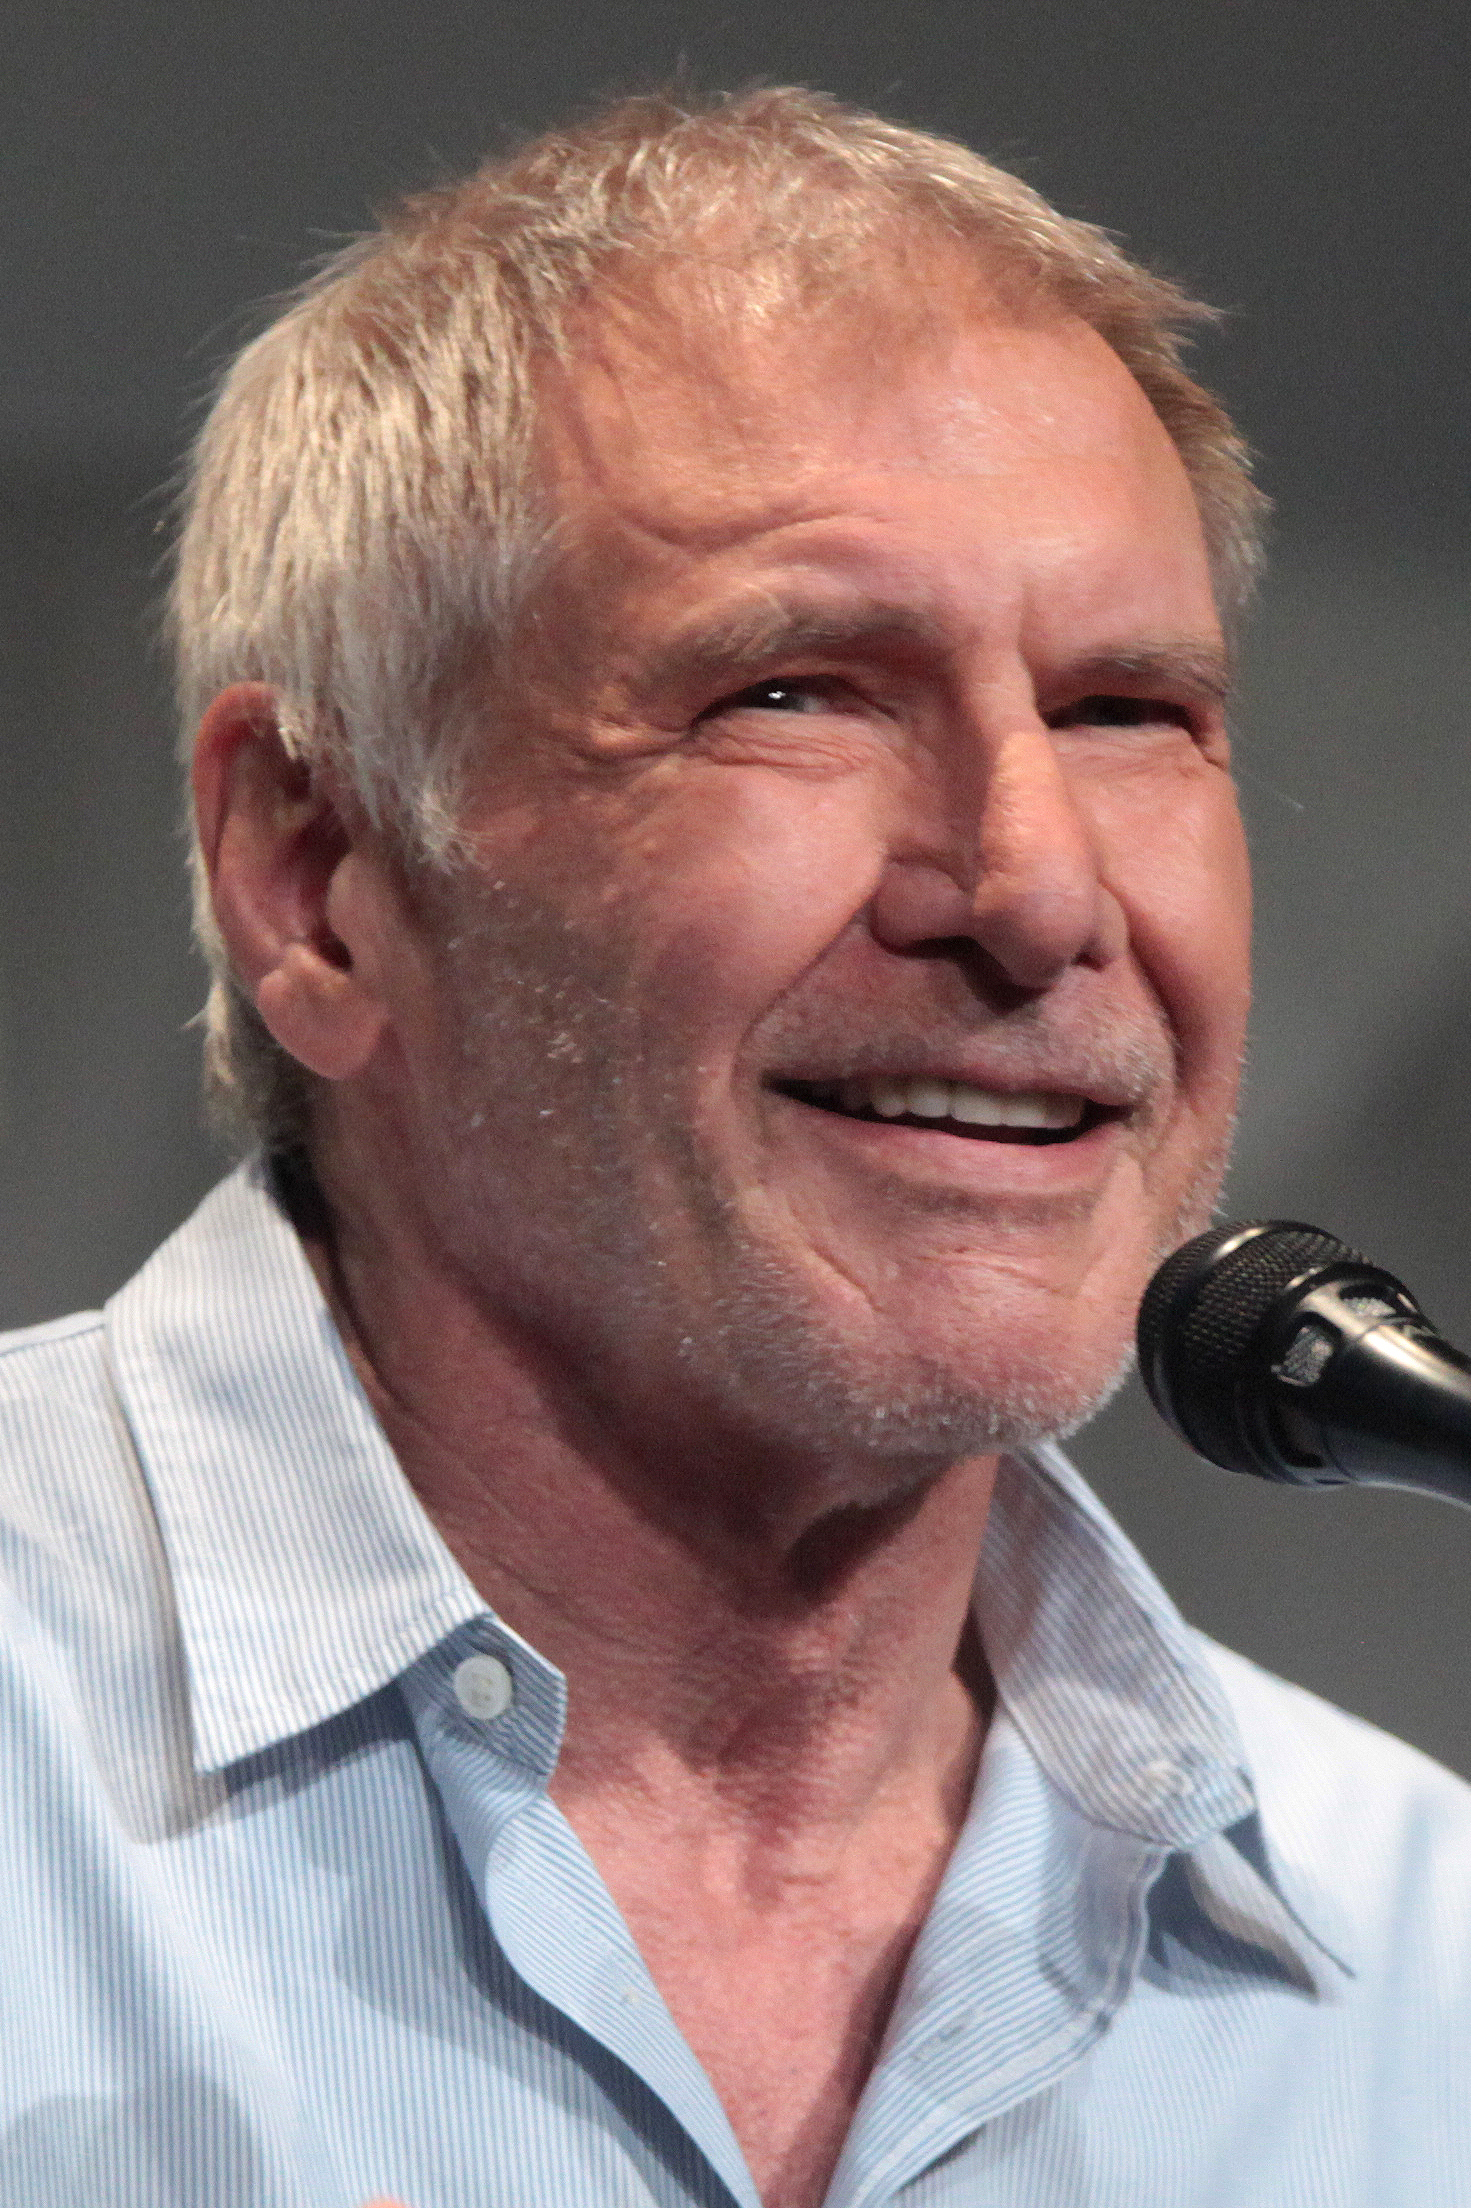 Depiction of Harrison Ford